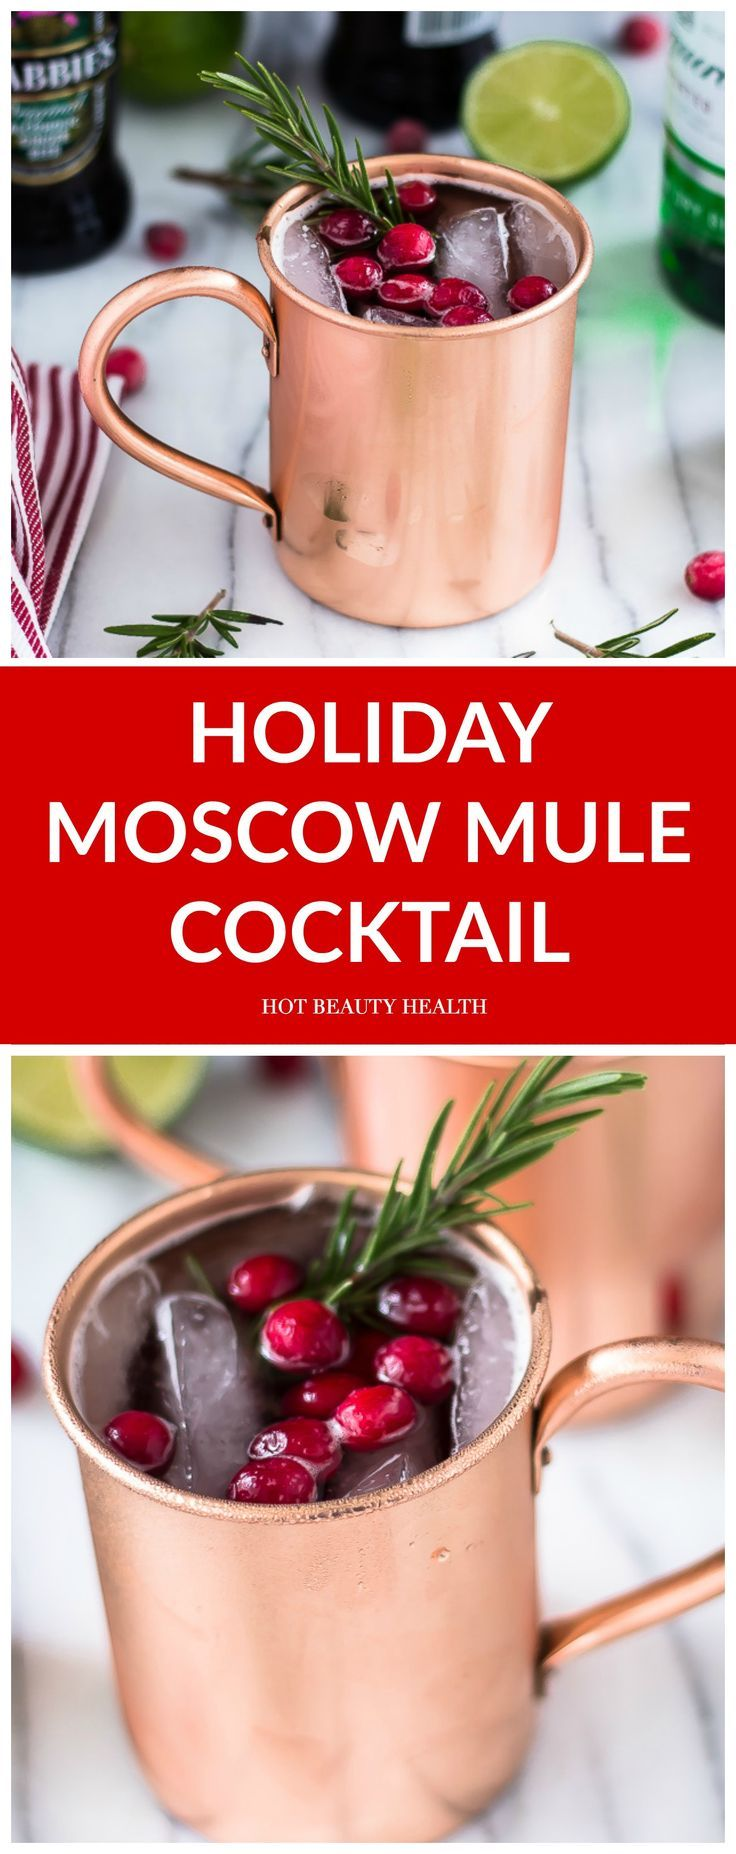 Get in the Seasonal Spirit With This Holiday Spin on the Moscow Mule drink cocktail. Made with cranberries, ginger beer, and vodka. The perfect holiday drink to sip during Thanksgiving and Christmas. (Click here for recipe!)